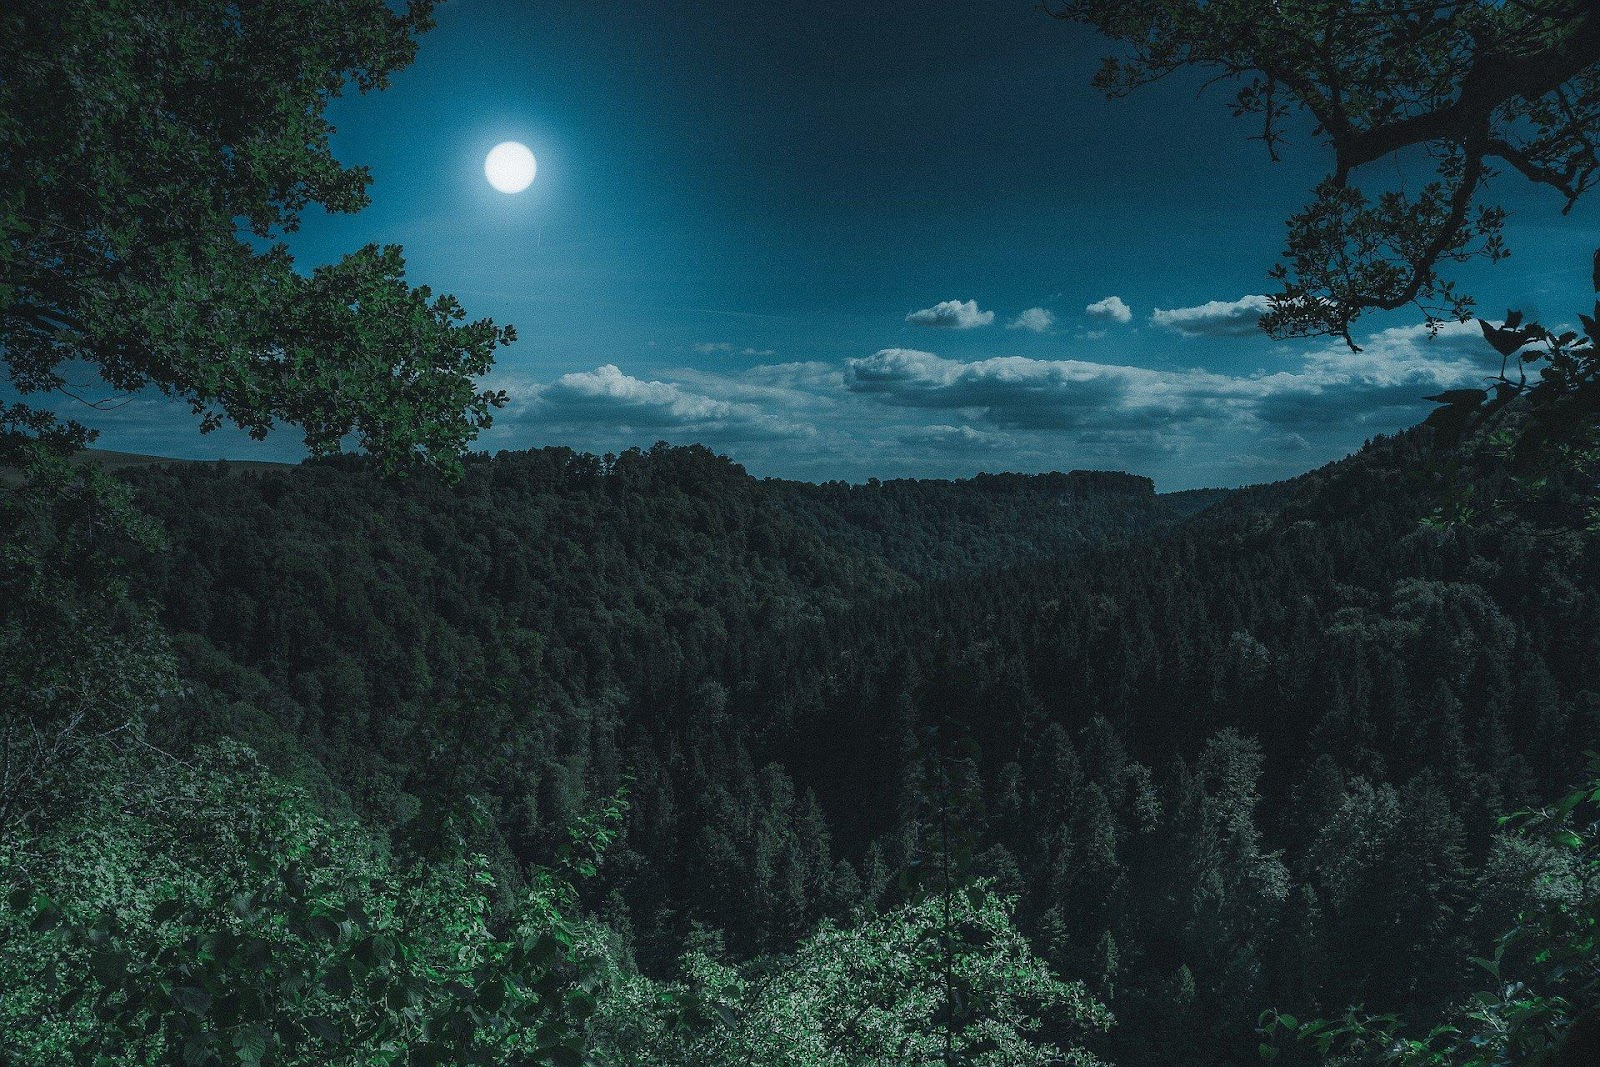 mountain range with view of the moon